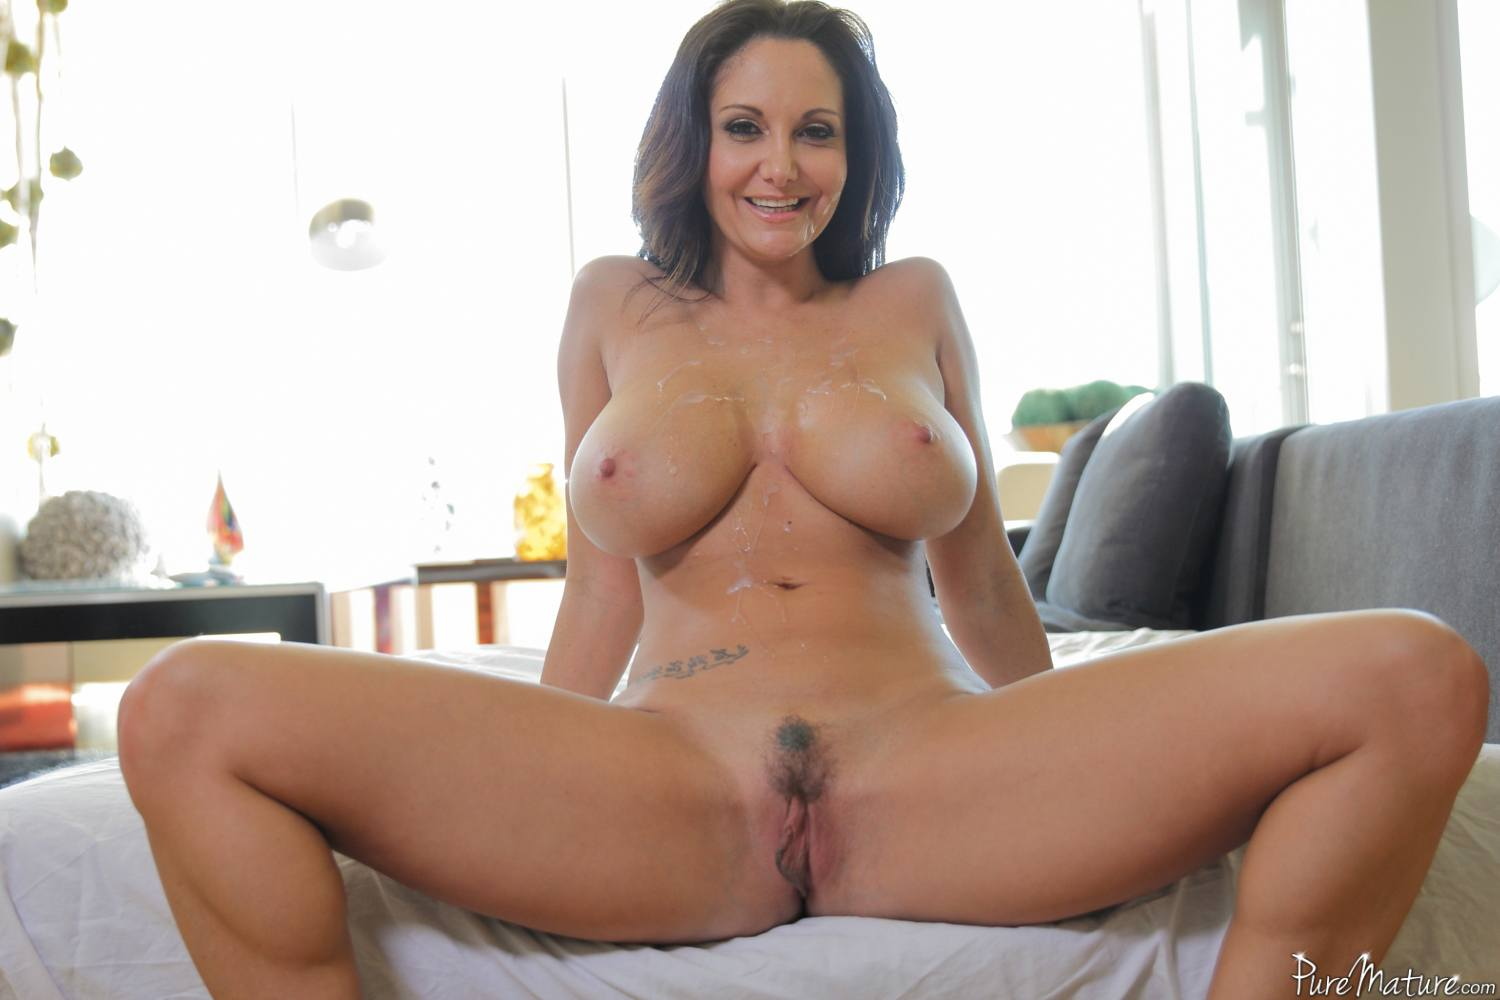 Ava addams shows big tits and gets her ass hammered